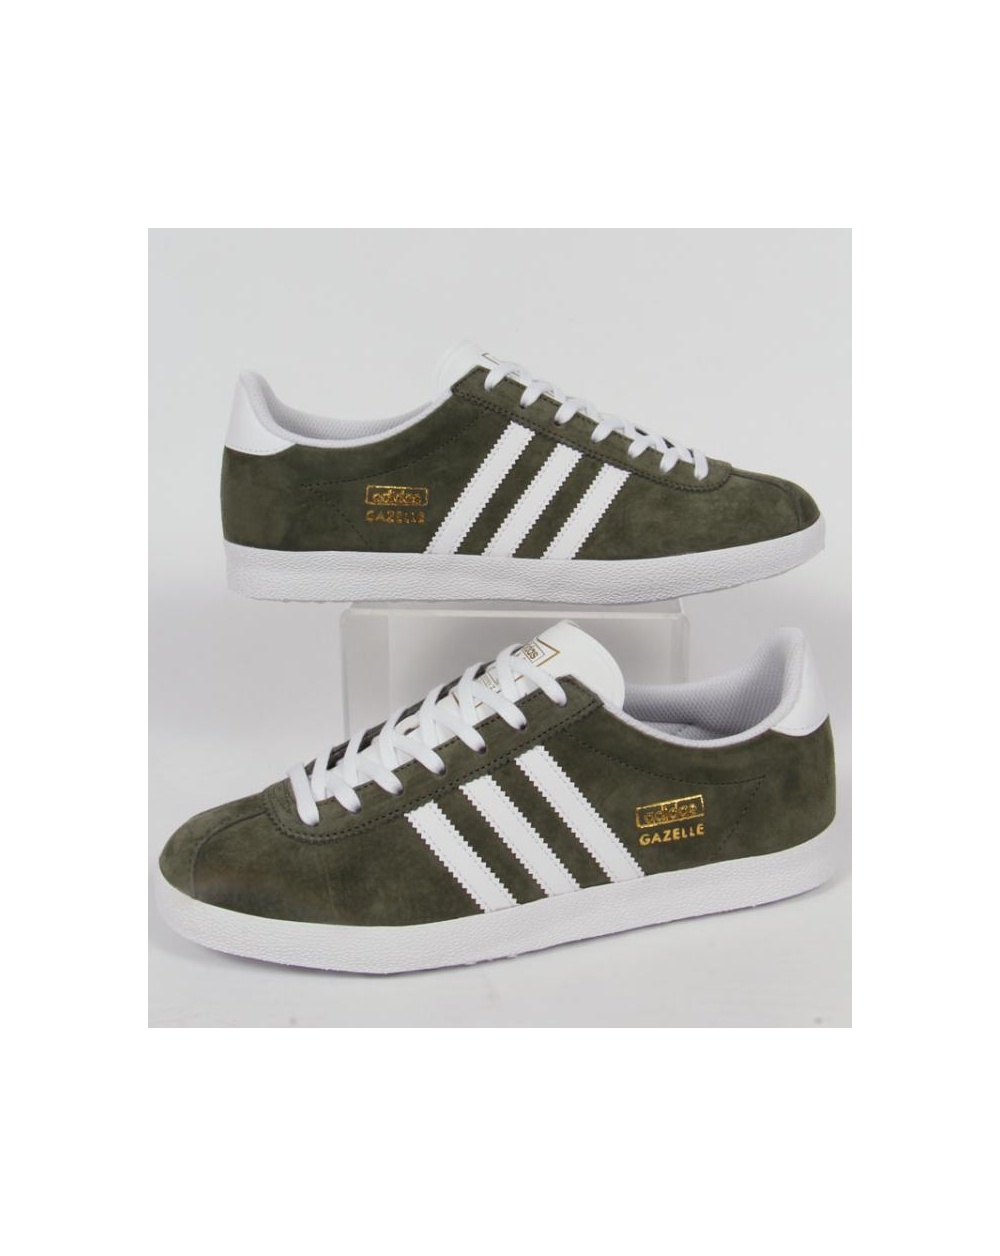 Adidas Gazelle OG Trainers Base Green/White